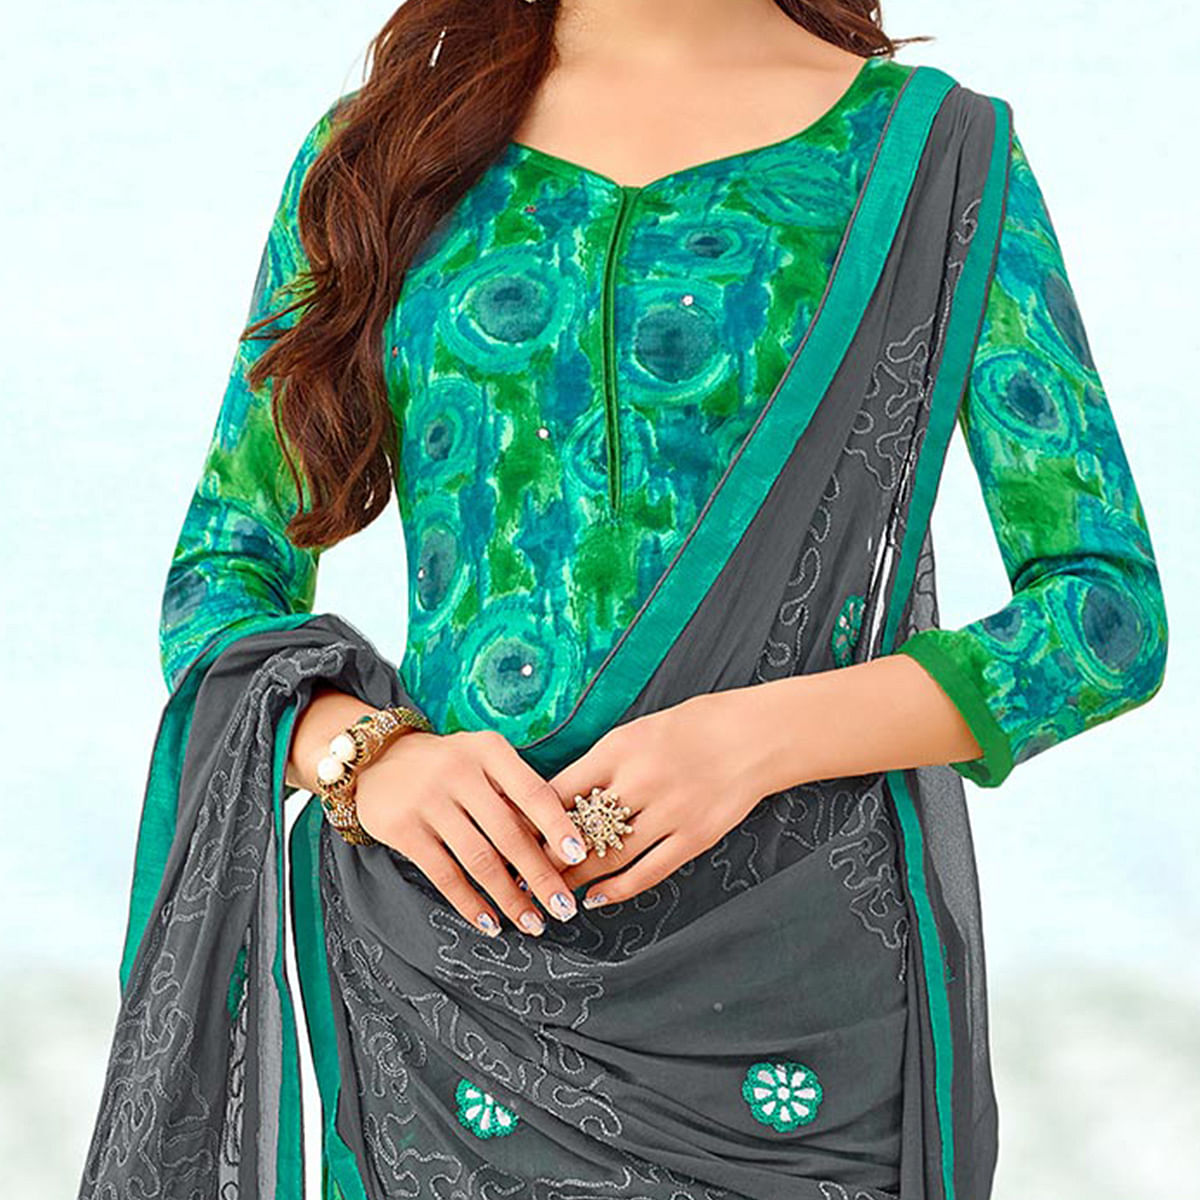 Charming Green Colored Designer Print With Mirror Effect Cotton Dress Material